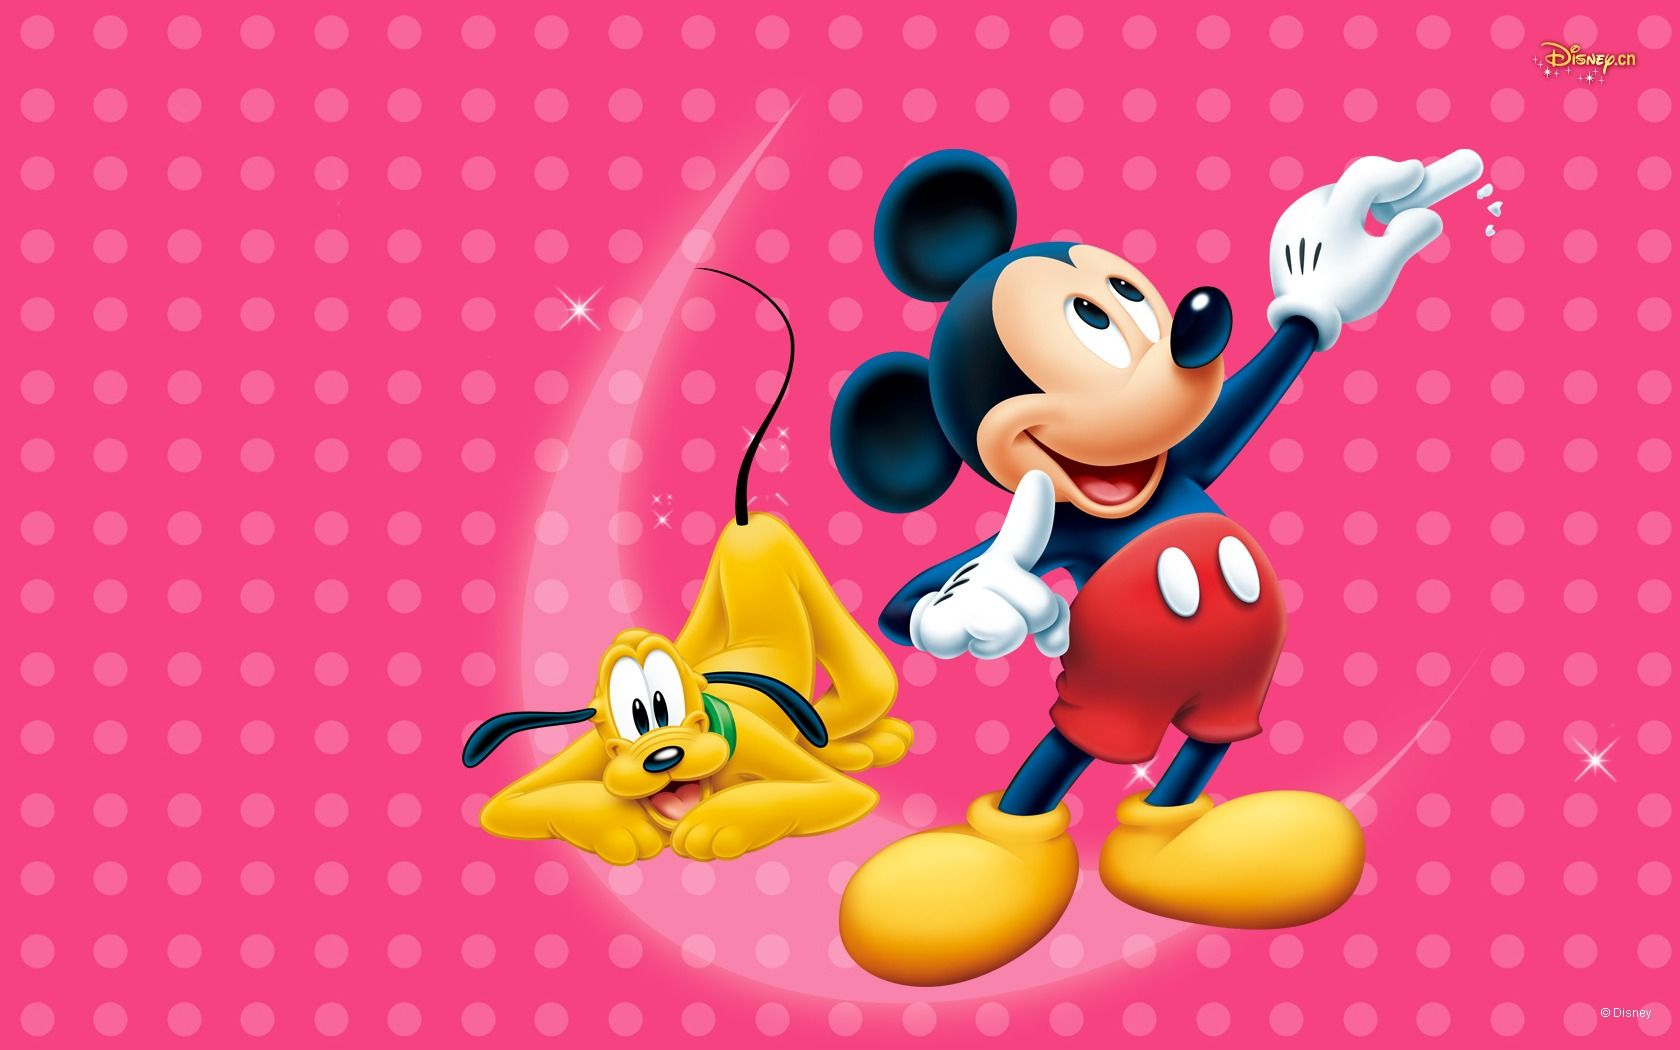 Mickey Mouse Hd Background 3d Cartoon Wallpapers Pinterest